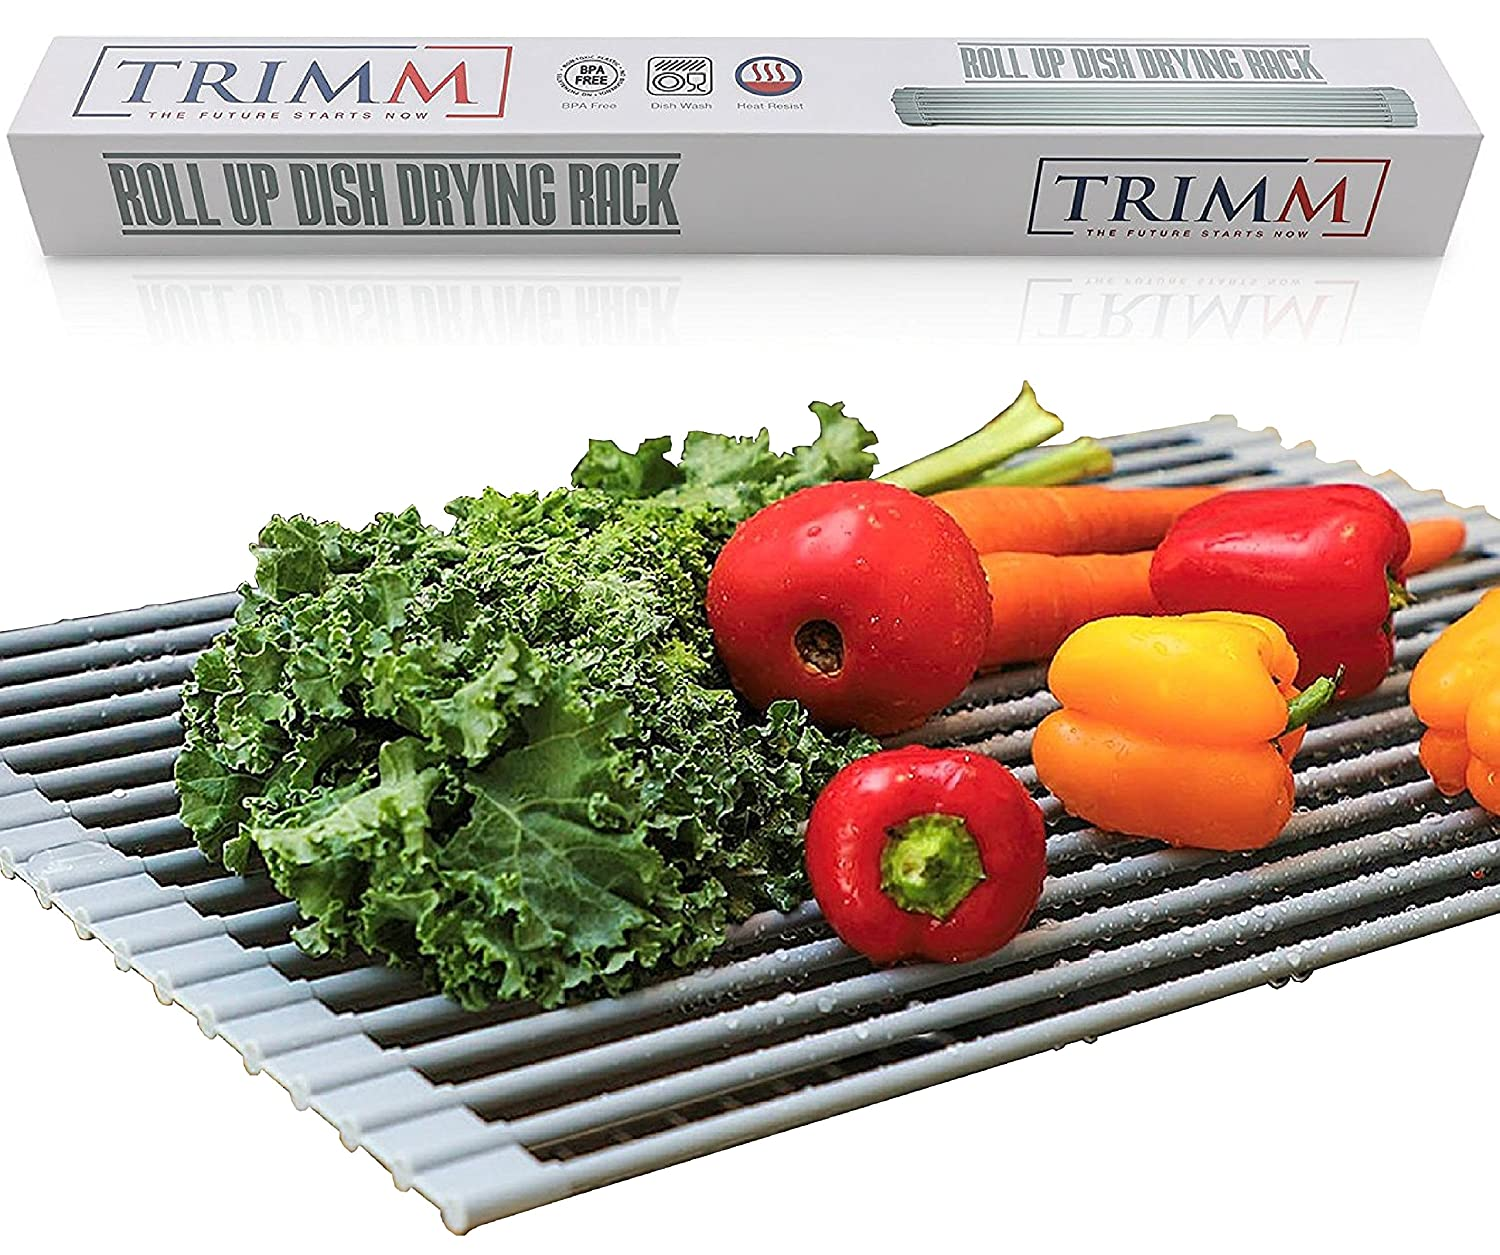 Over The Sink Drying Rack | Kitchen Dish Drainer | Supremely Versatile Dish Drying Tray | Rollable BPA-Free Silicone Coated Cooling Rack | Handy Drain Board Mat for Over Sink Salad Prep Grey by Trimm Trimm Australia